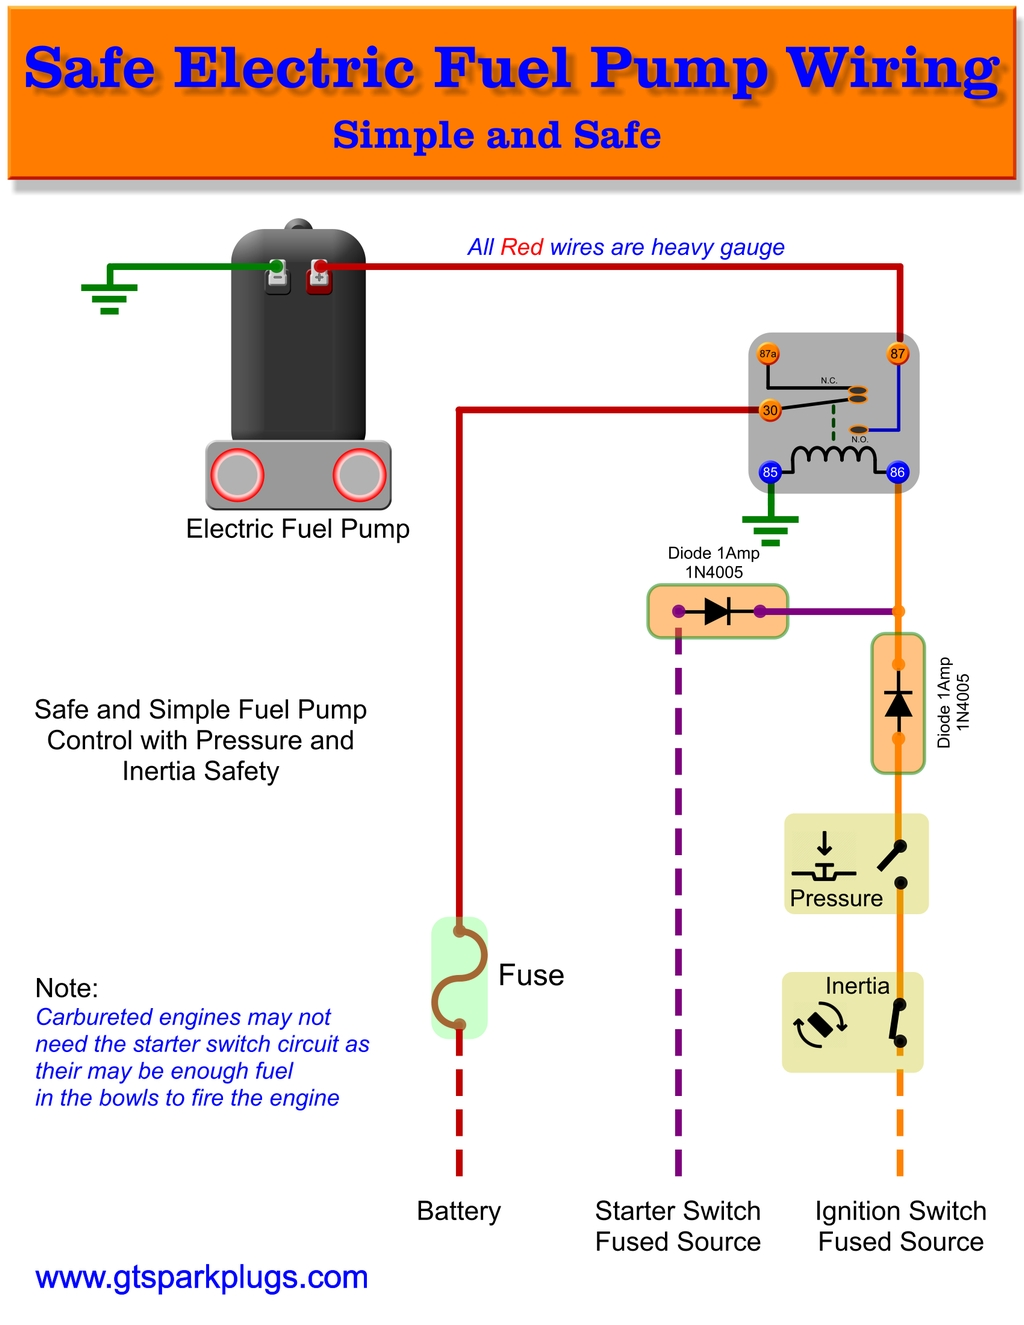 Electric Fuel Pump Wiring Diagram Electric Fuel Pump Relay Wiring ...